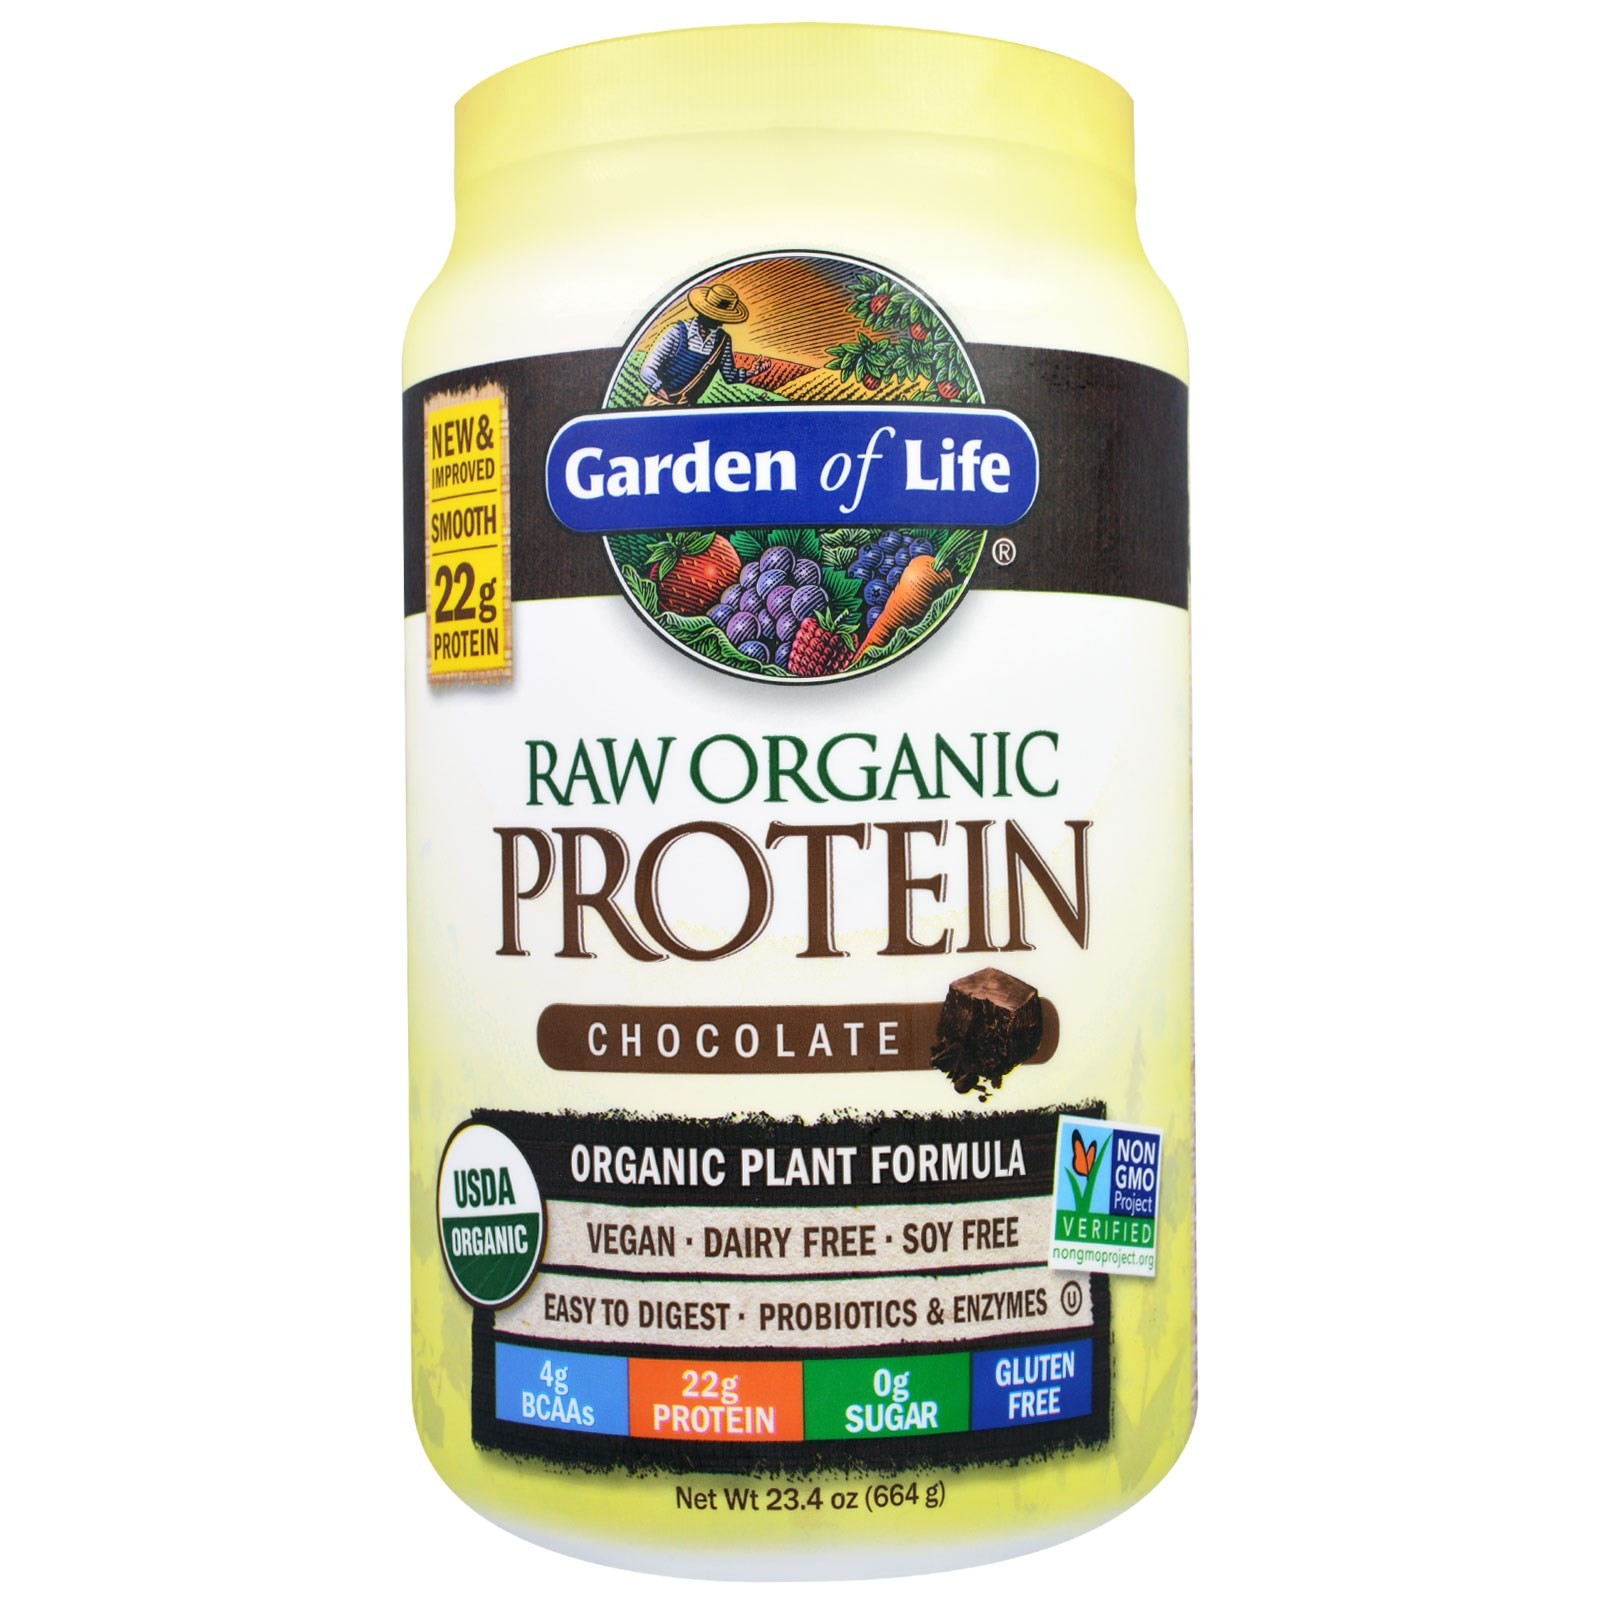 GARDEN OF LIFE RAW PROTEIN 22 OZ. CHOC CACAO